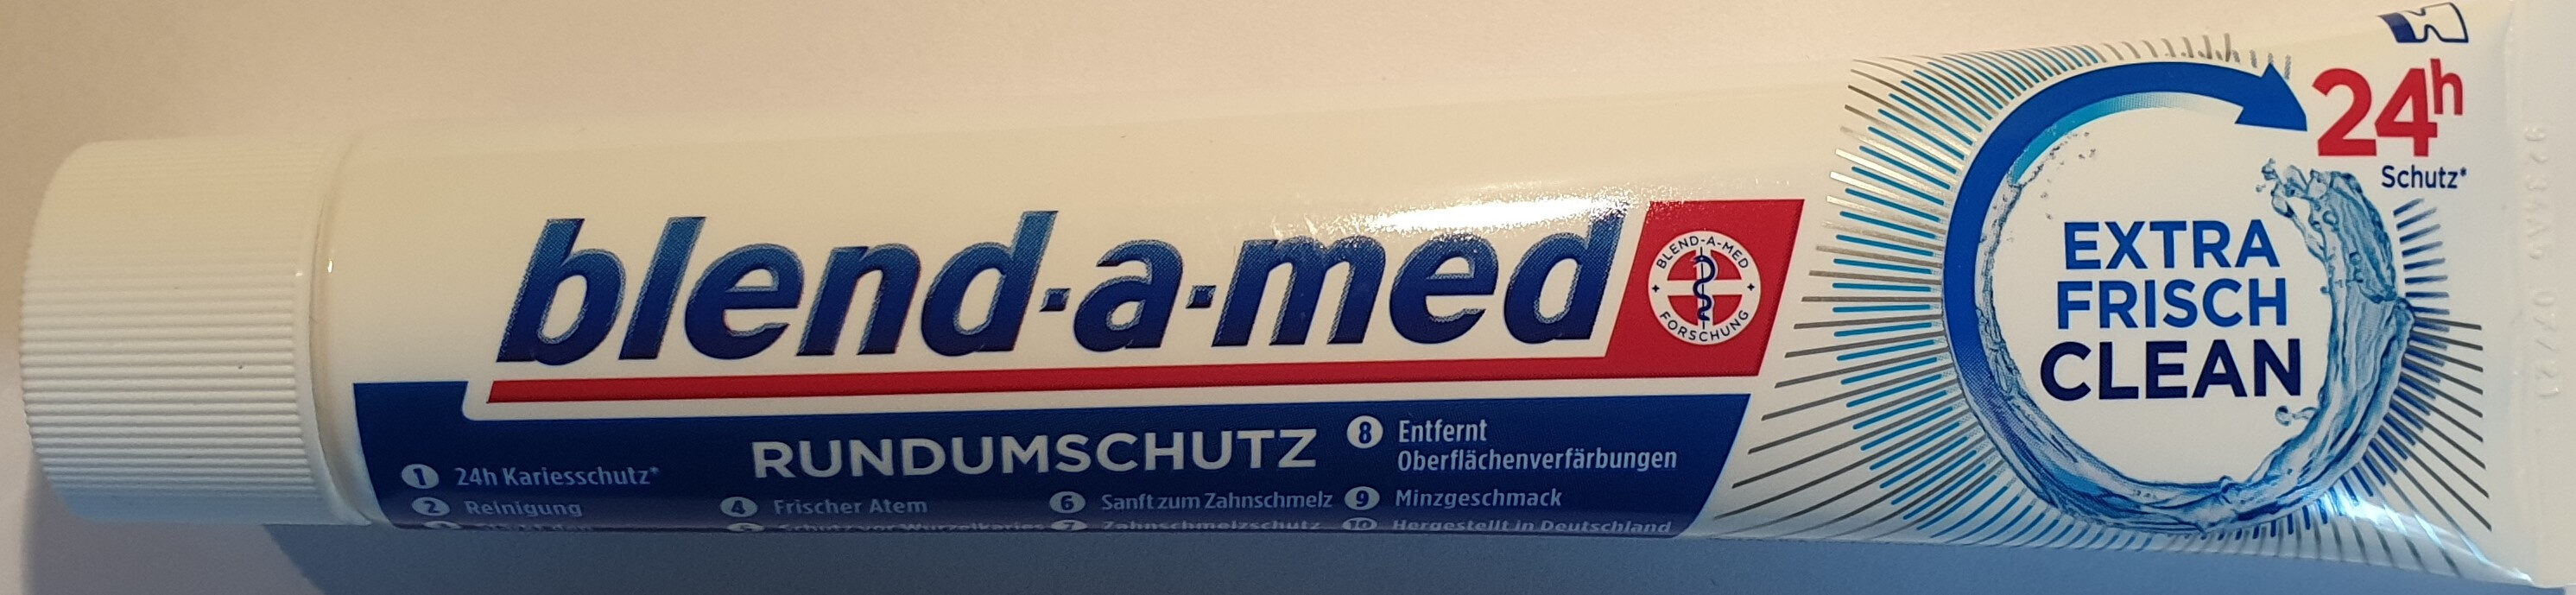 extra frisch clean - Product